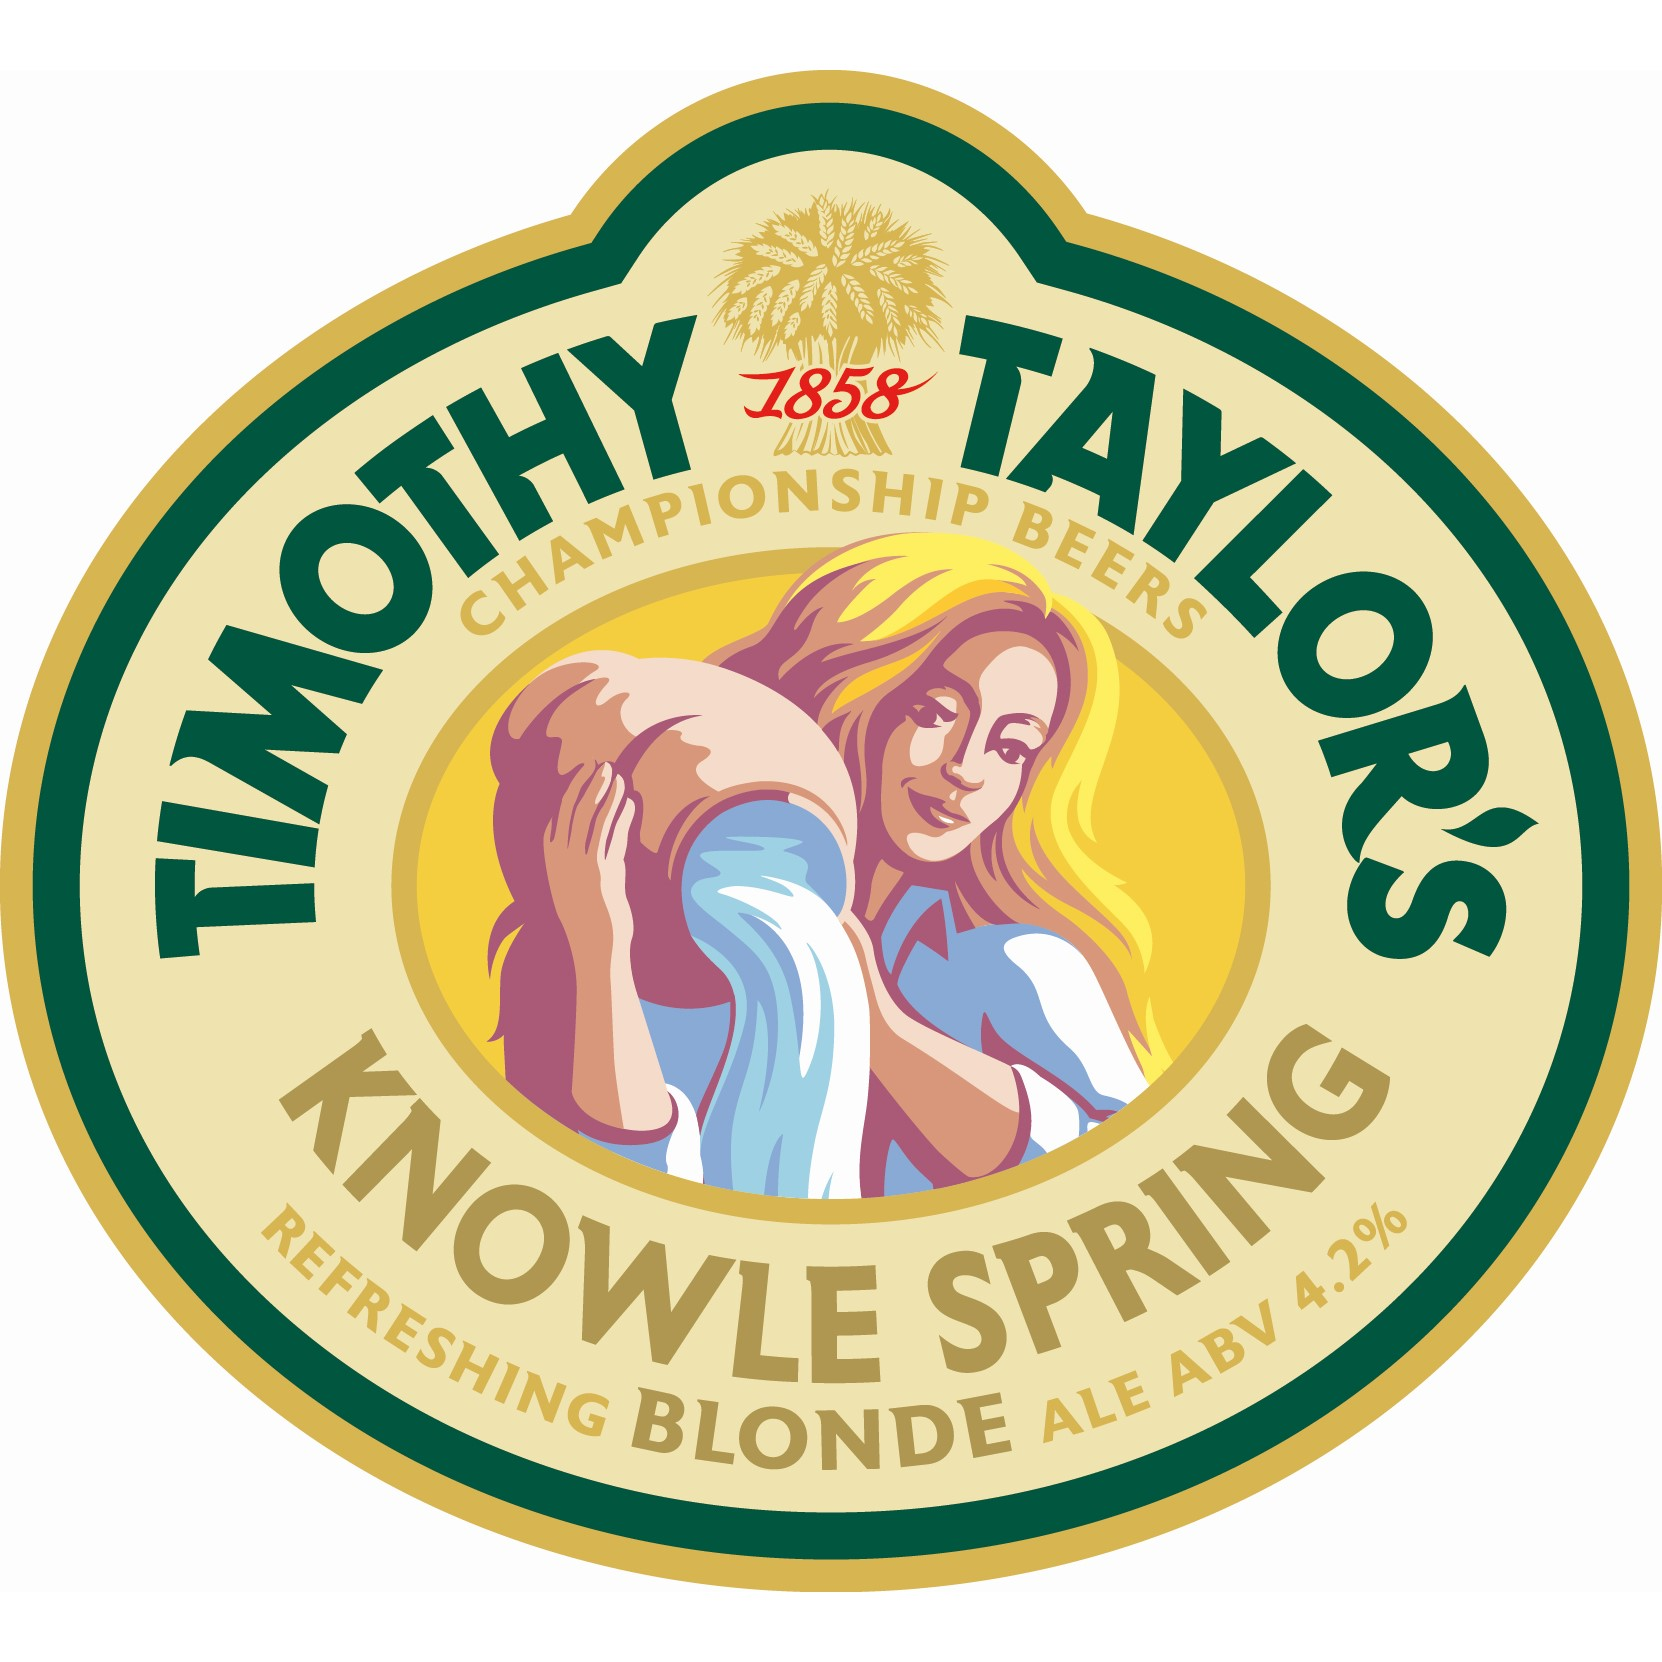 Timothy Taylor Knowle Spring Blonde 9 Gallon Blonde   4.2%